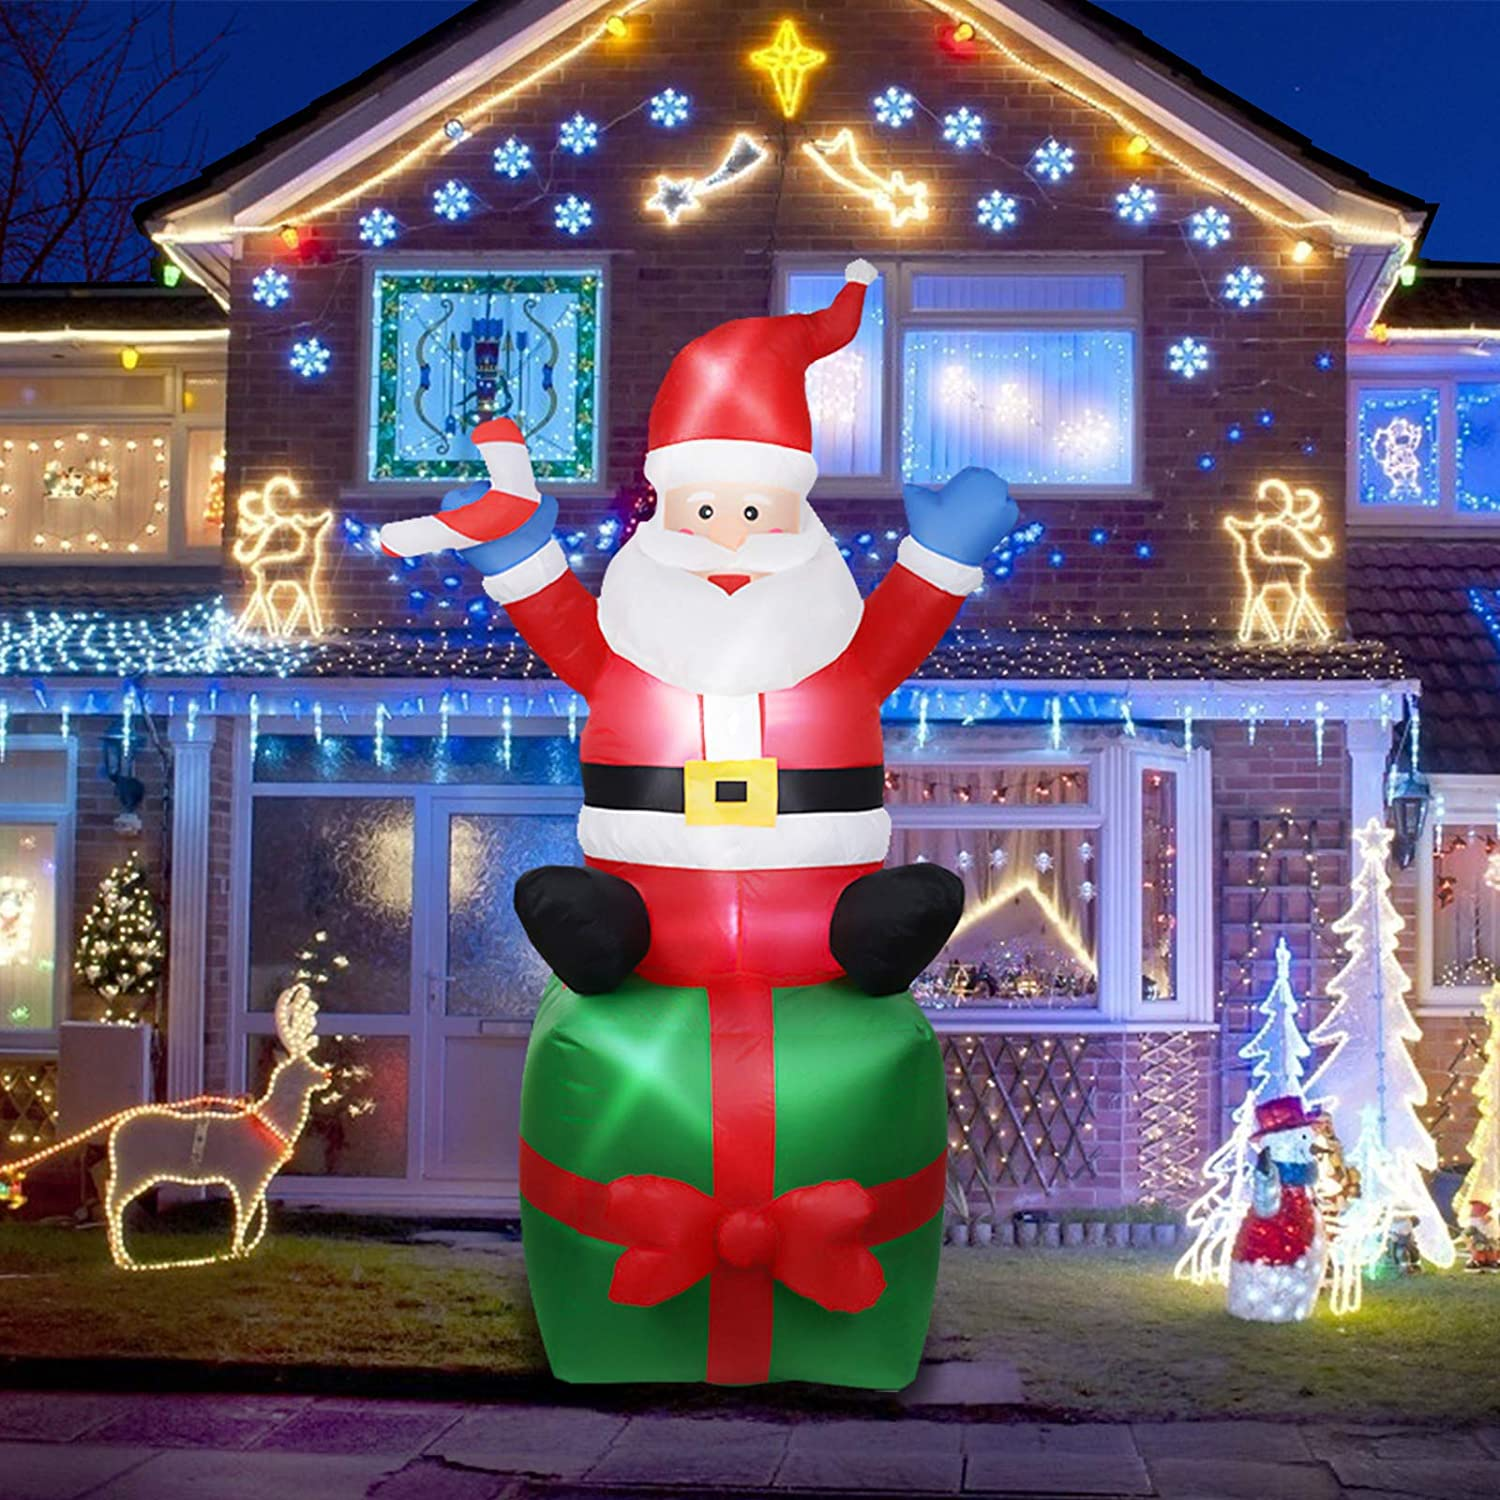 Evoio 6FT Christmas Decorations- Inflatable Santa Claus with Gifts Giant Yard Garden Lights Decor/Best for Outdoor and Indoor Holiday Decorations(Santa Sitting on The Gift Bag) (green4)